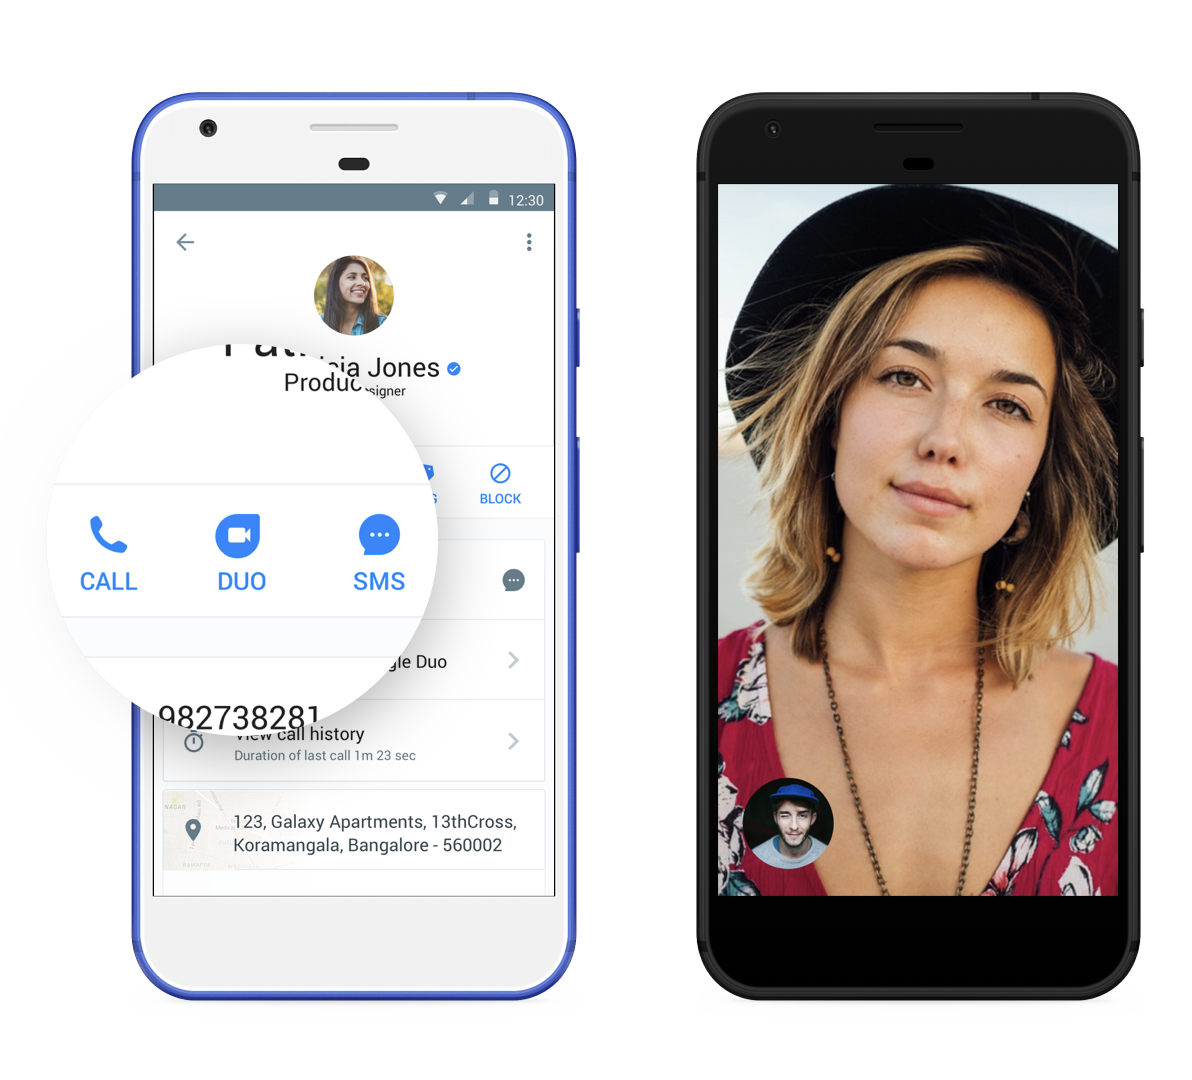 Truecaller and Google Come Together to Improve Video Calling